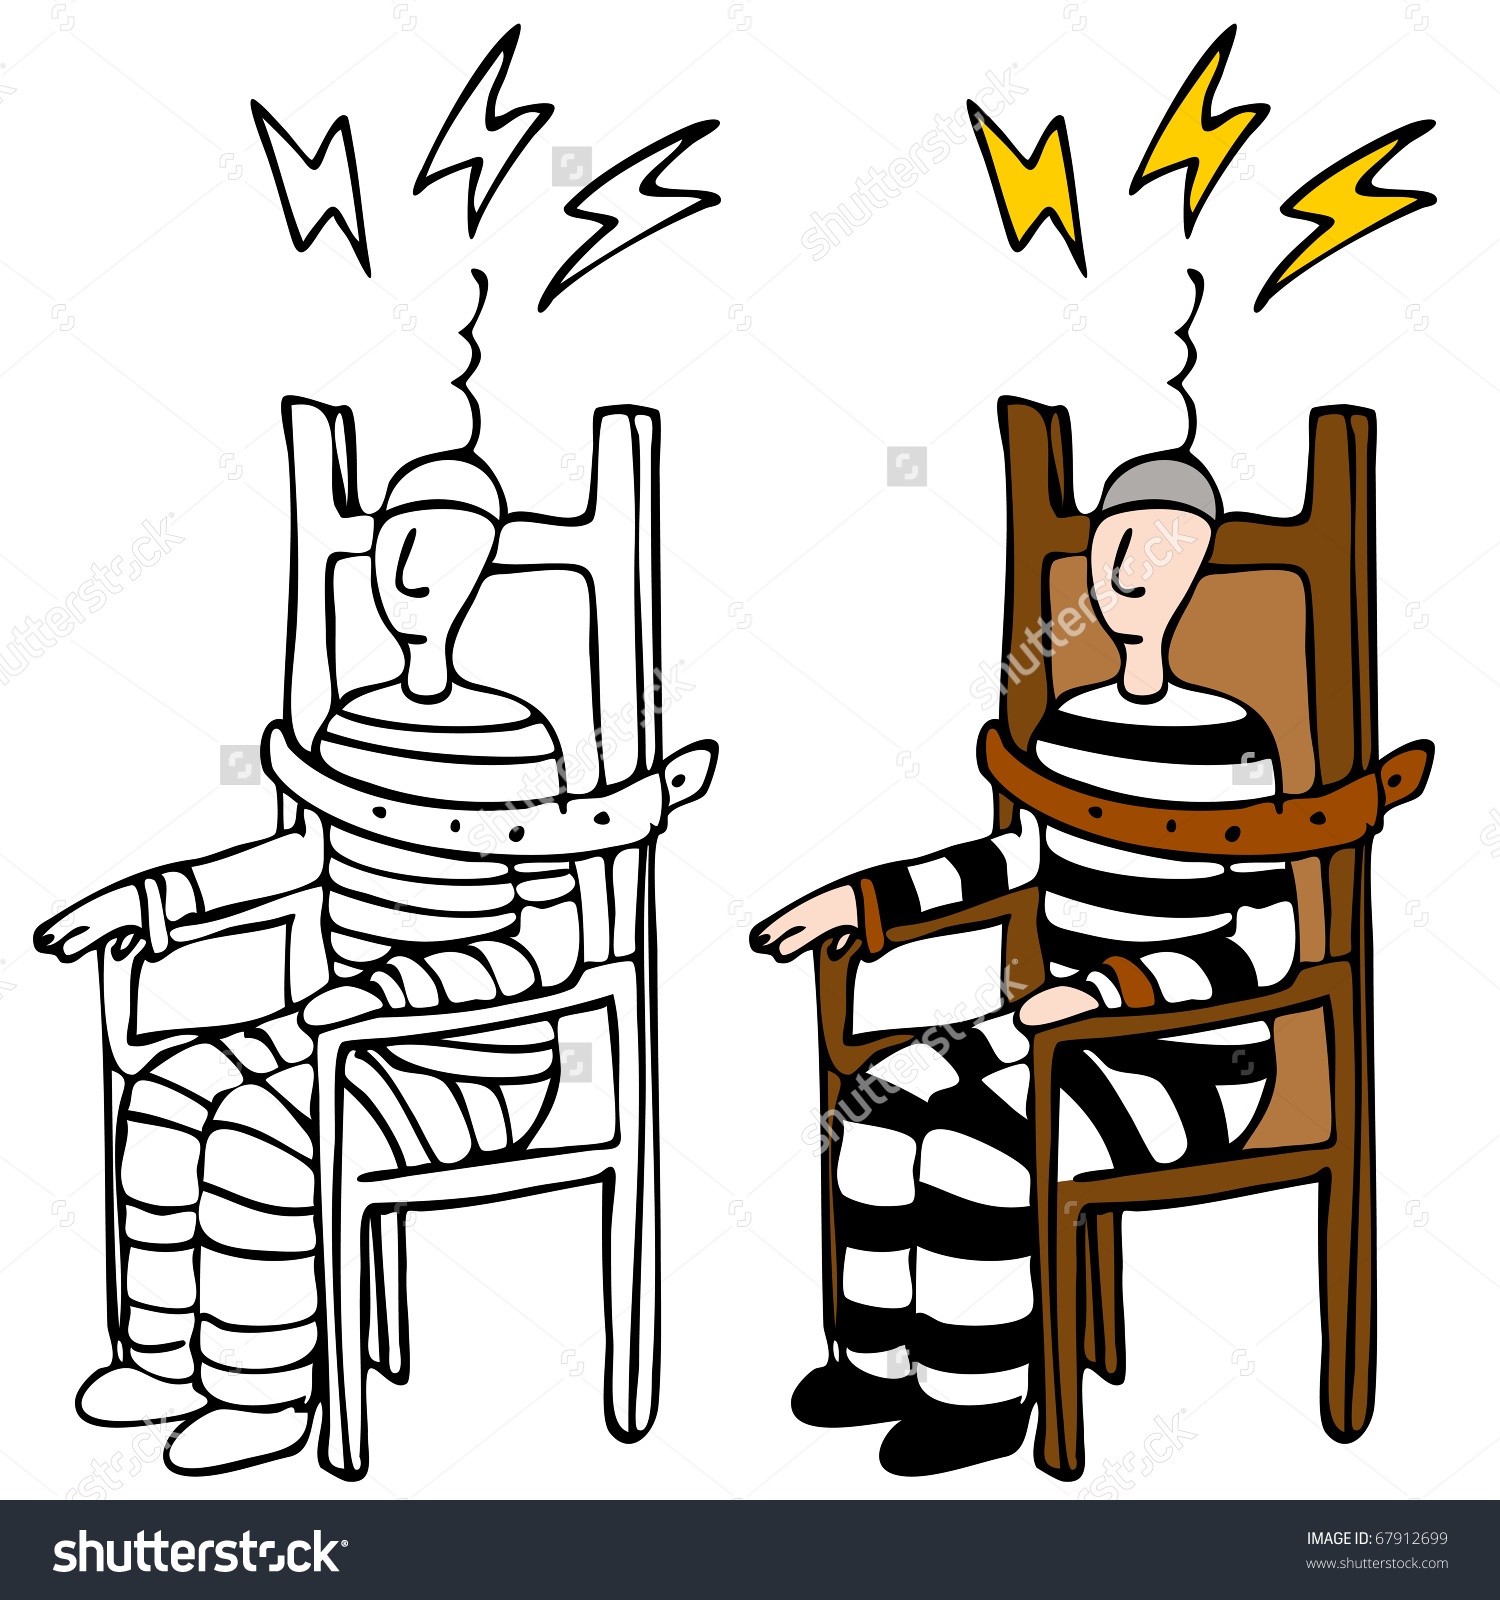 Image Man Electric Chair Stock Vector 67912699.